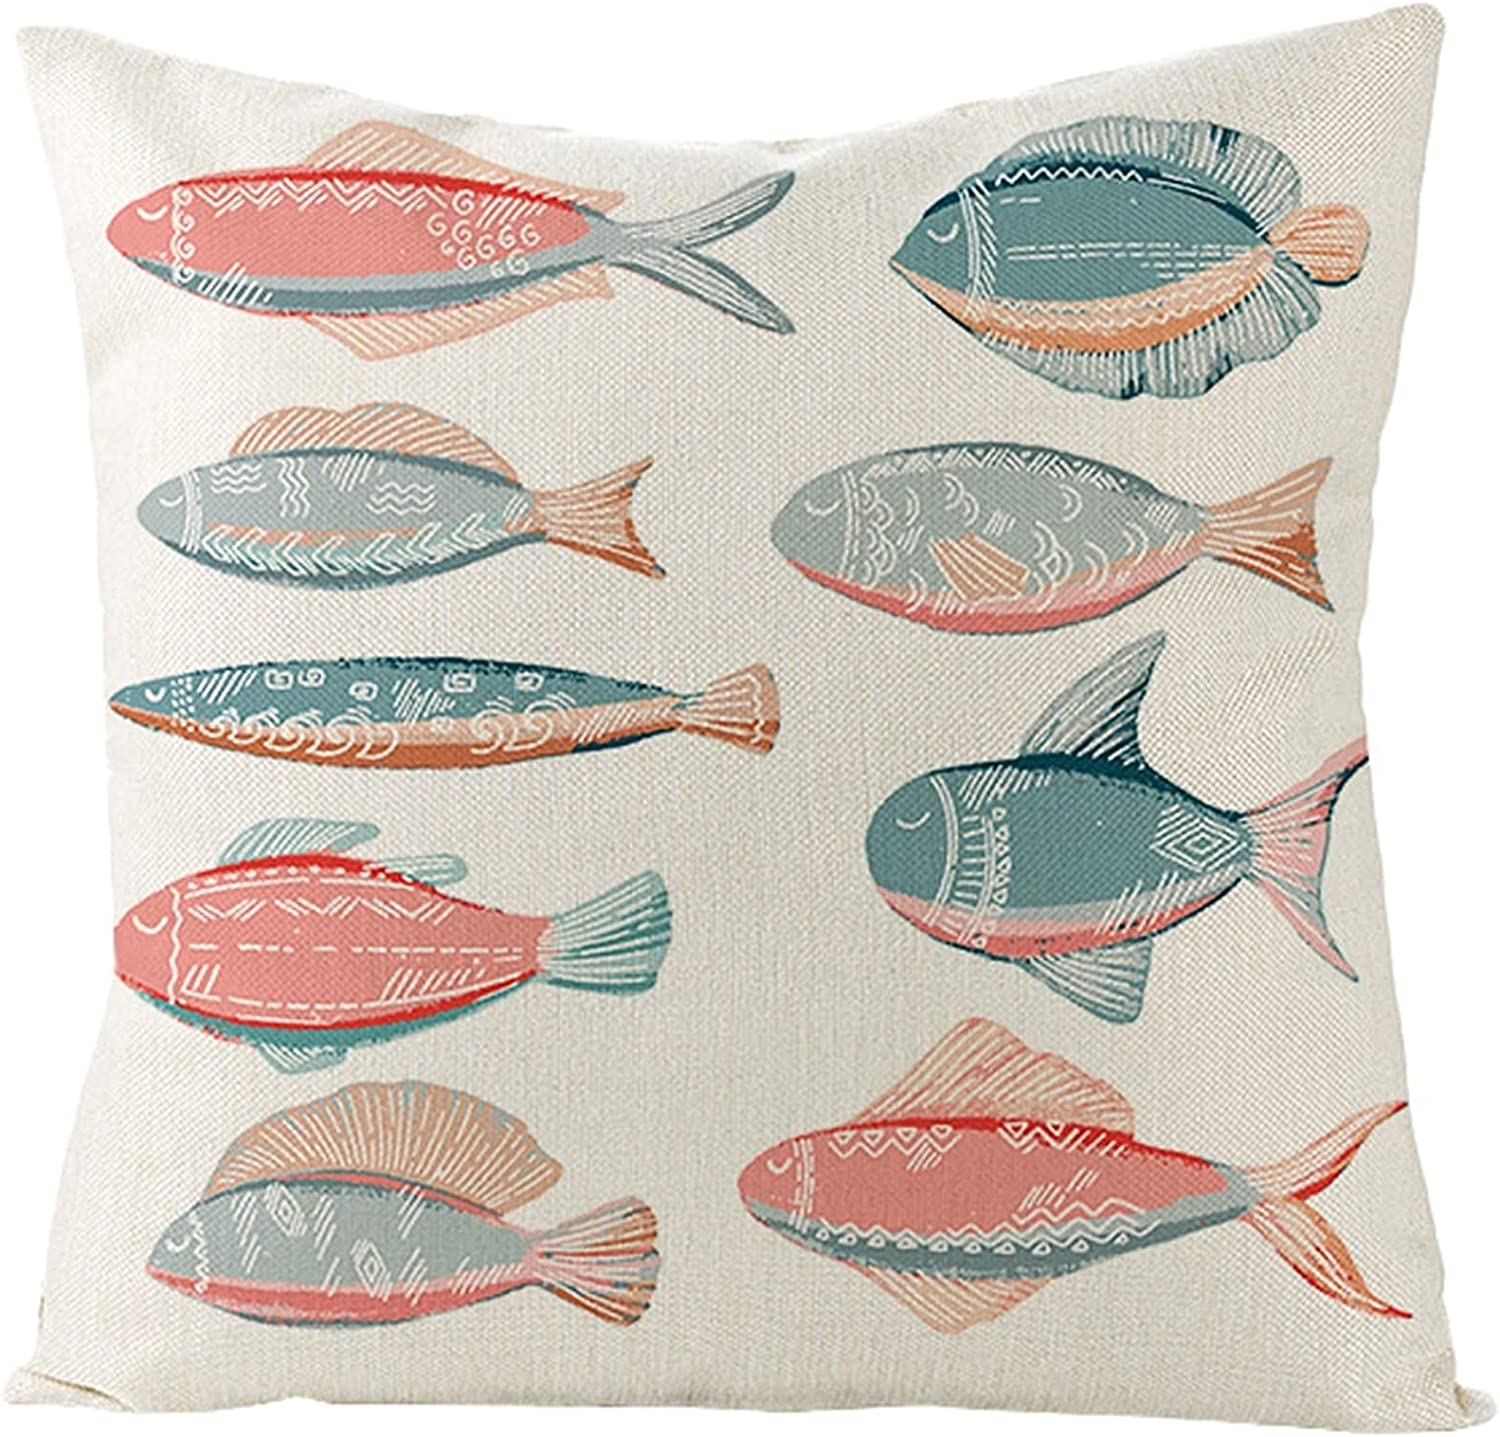 Daesar Throw Pillow Covers for Kids Light Free Shipping New Mail order cheap Pillowcases Room Gree